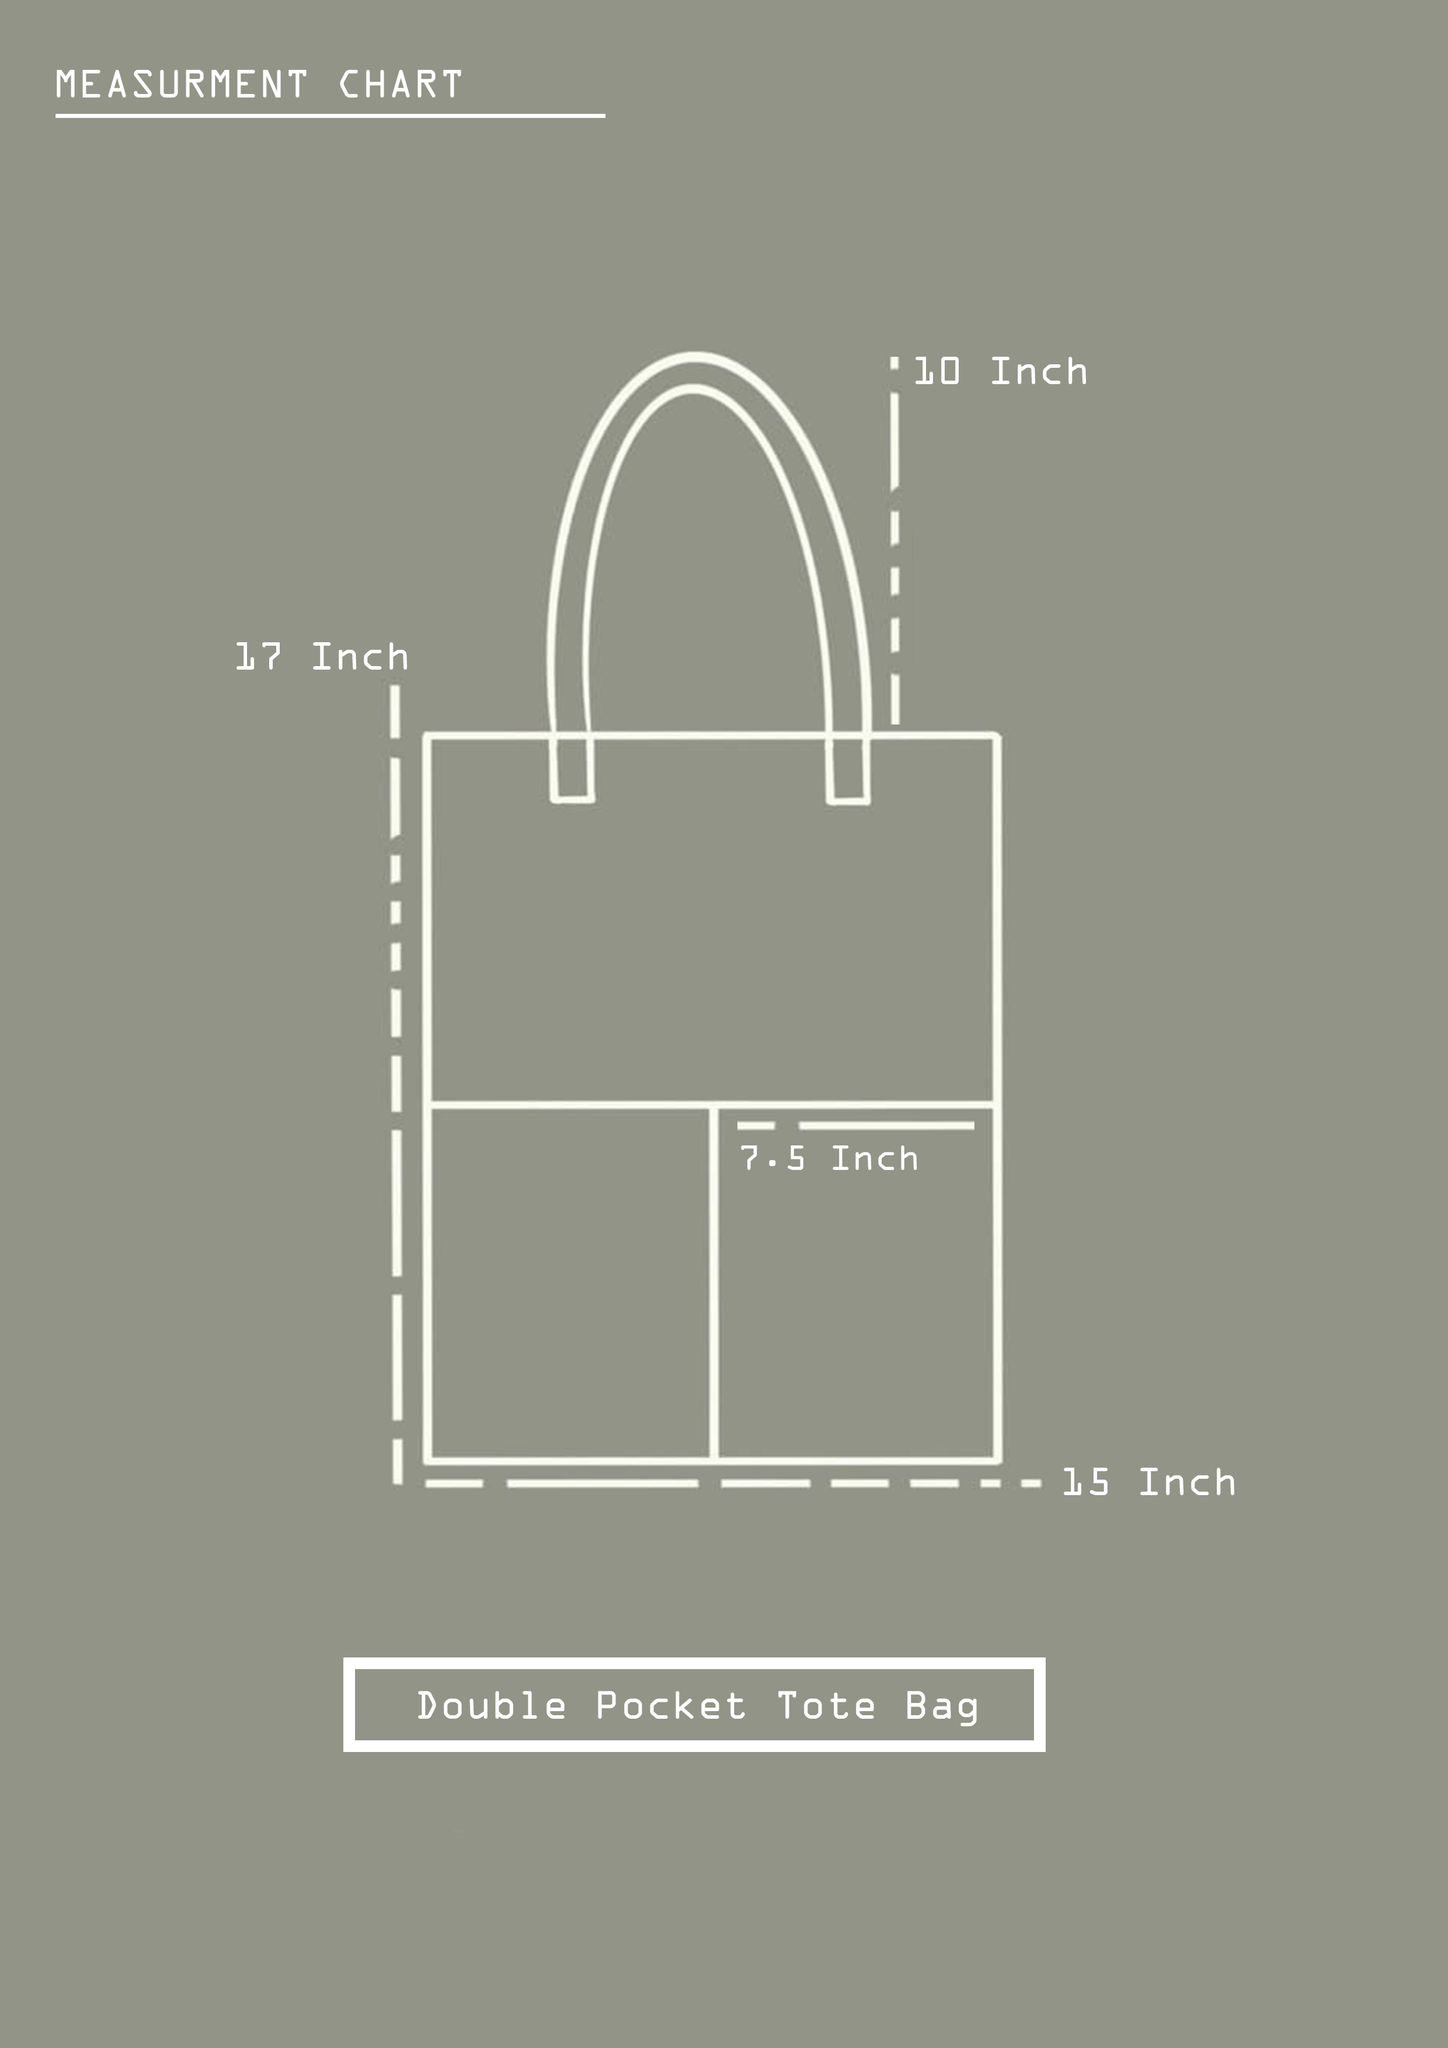 Double Pocket tote - electronics fun